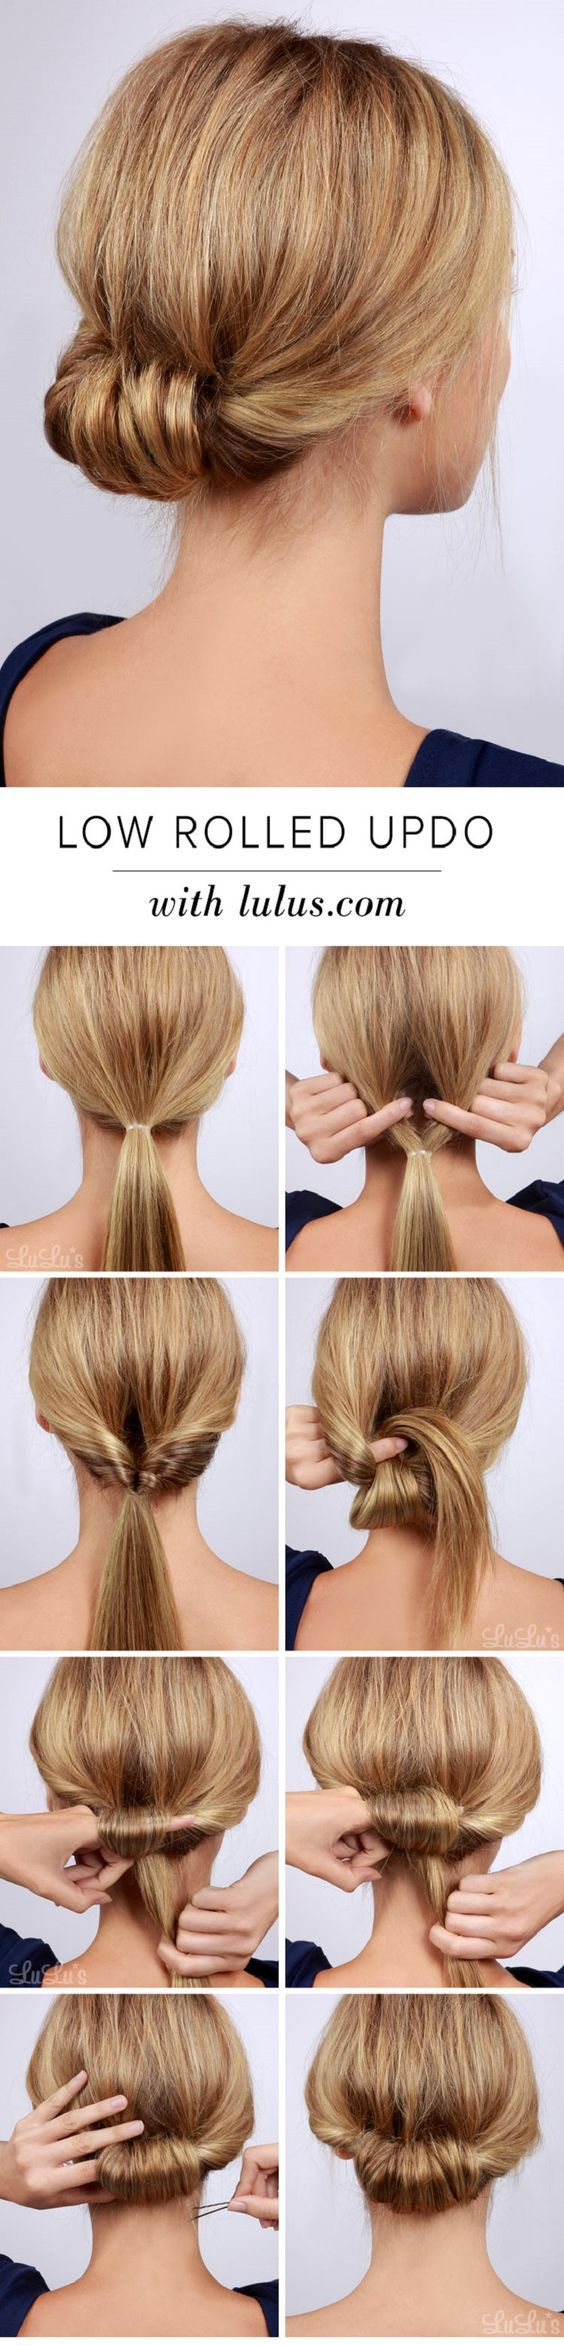 best 25+ professional updo ideas on pinterest | easy professional